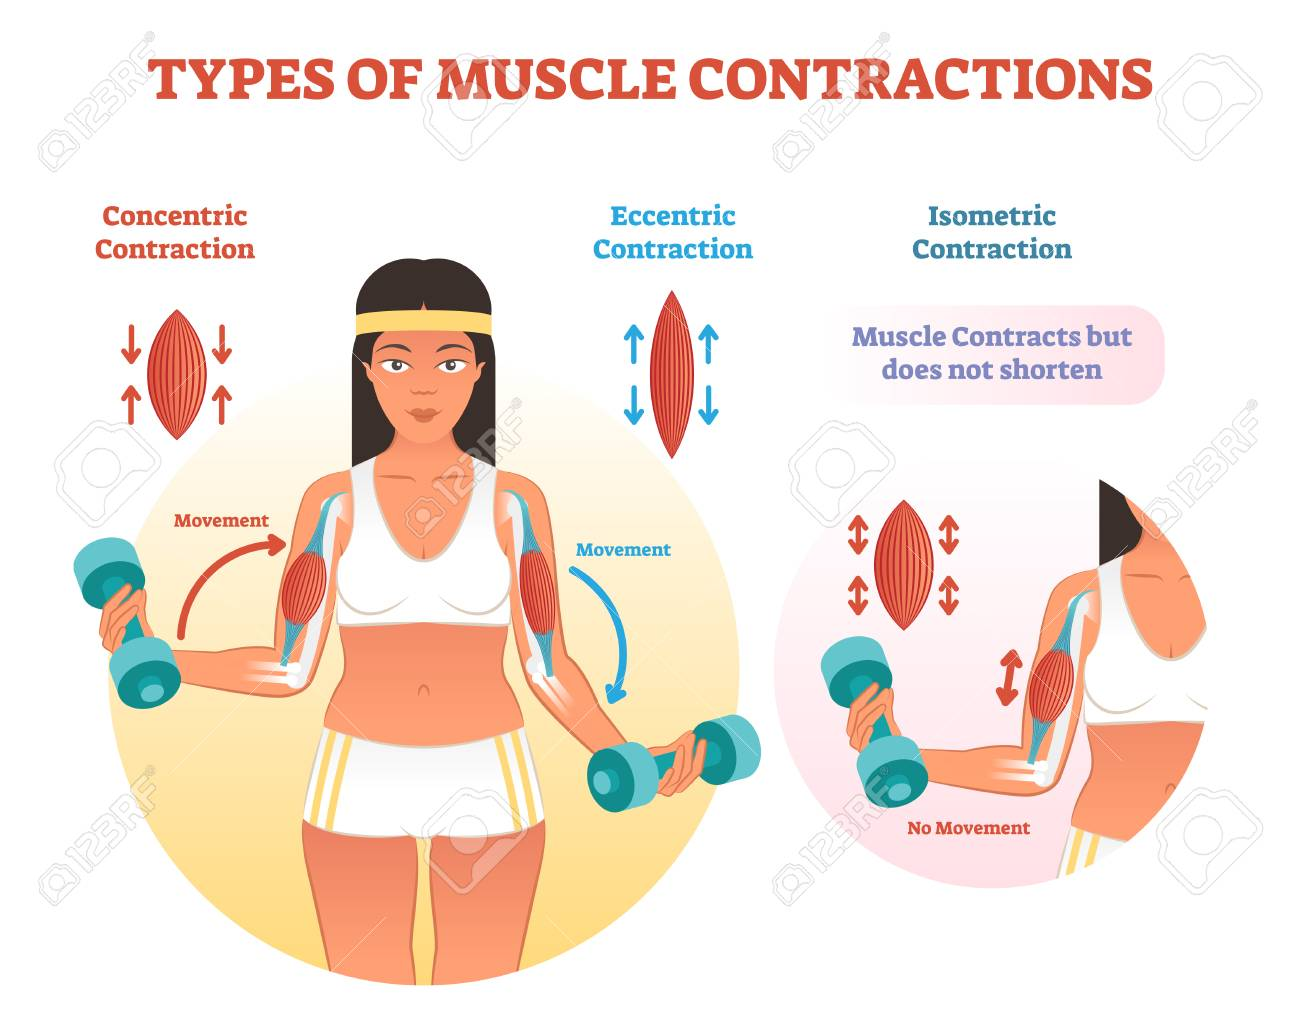 Muscle contractions scheme with arm cross section and fitness weight lifting exercise movement. Concentric, eccentric and isometric contraction types diagram. - 99343402